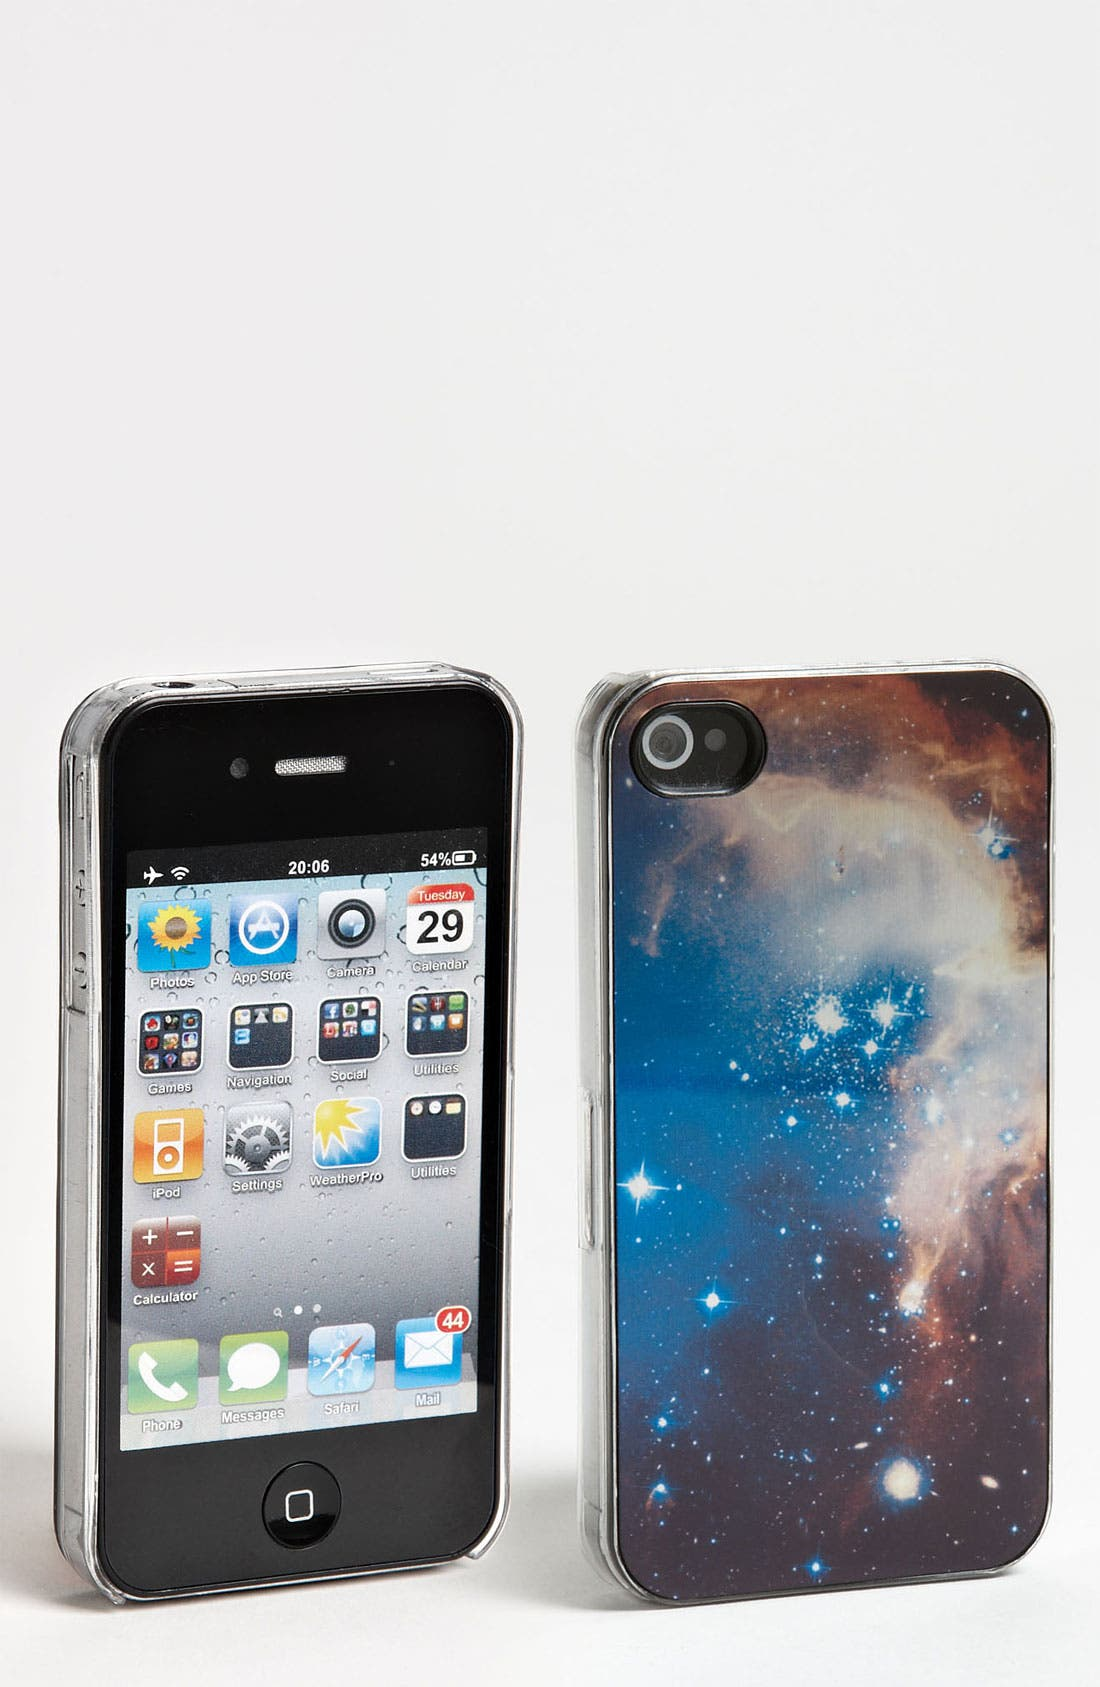 Alternate Image 1 Selected - ZERO GRAVITY 'Space' iPhone 4 & 4S Case